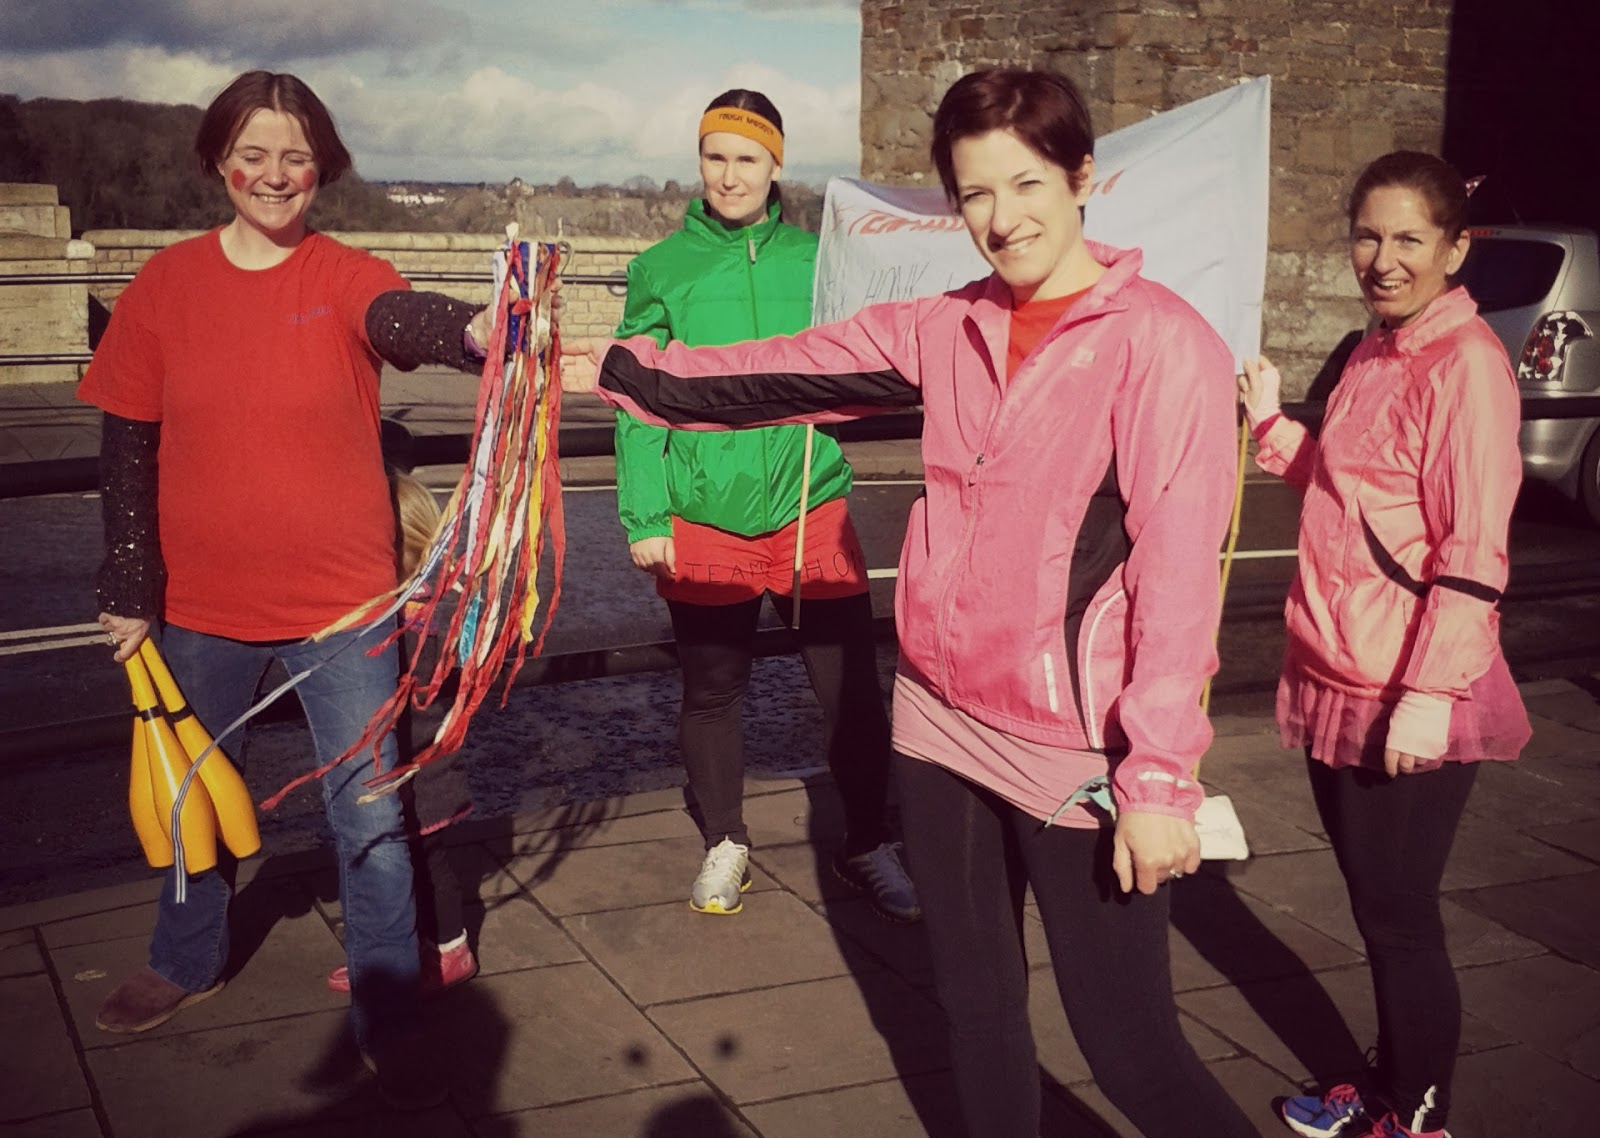 Bristol Team Honk Relay Sport Relief 2014 // 76sunflowers